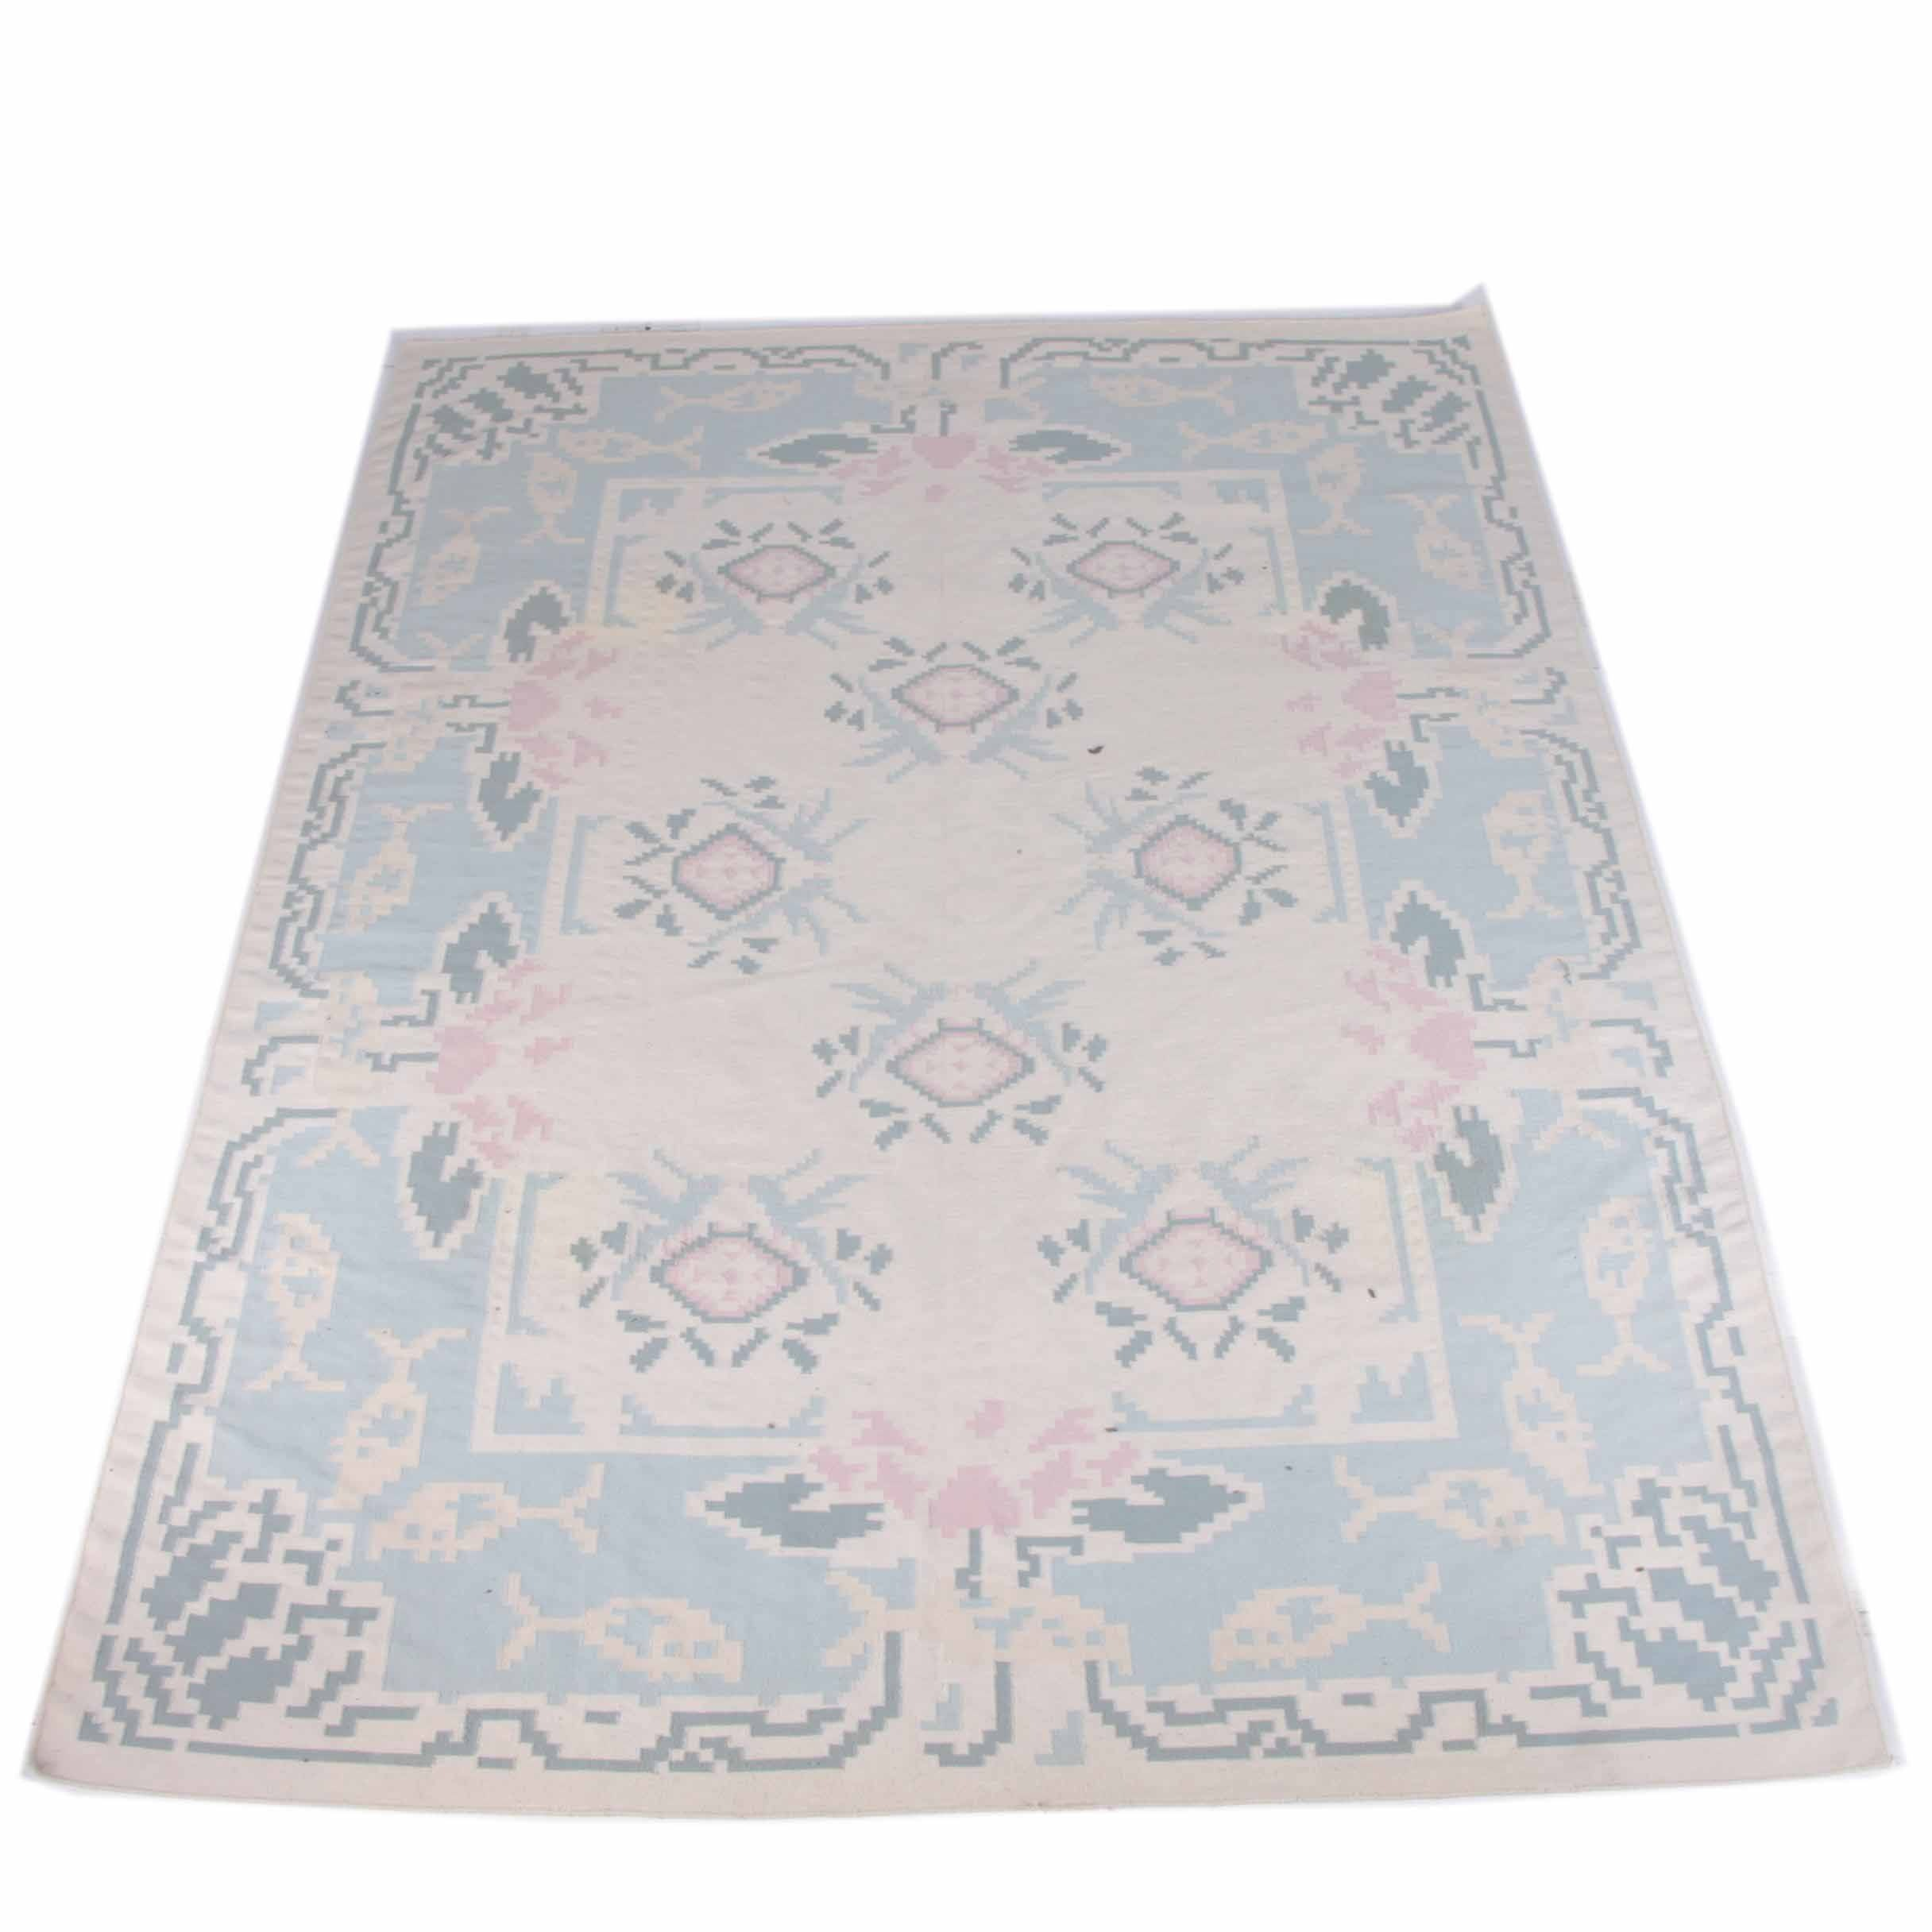 Handwoven Flat Weave Floral Area Rug